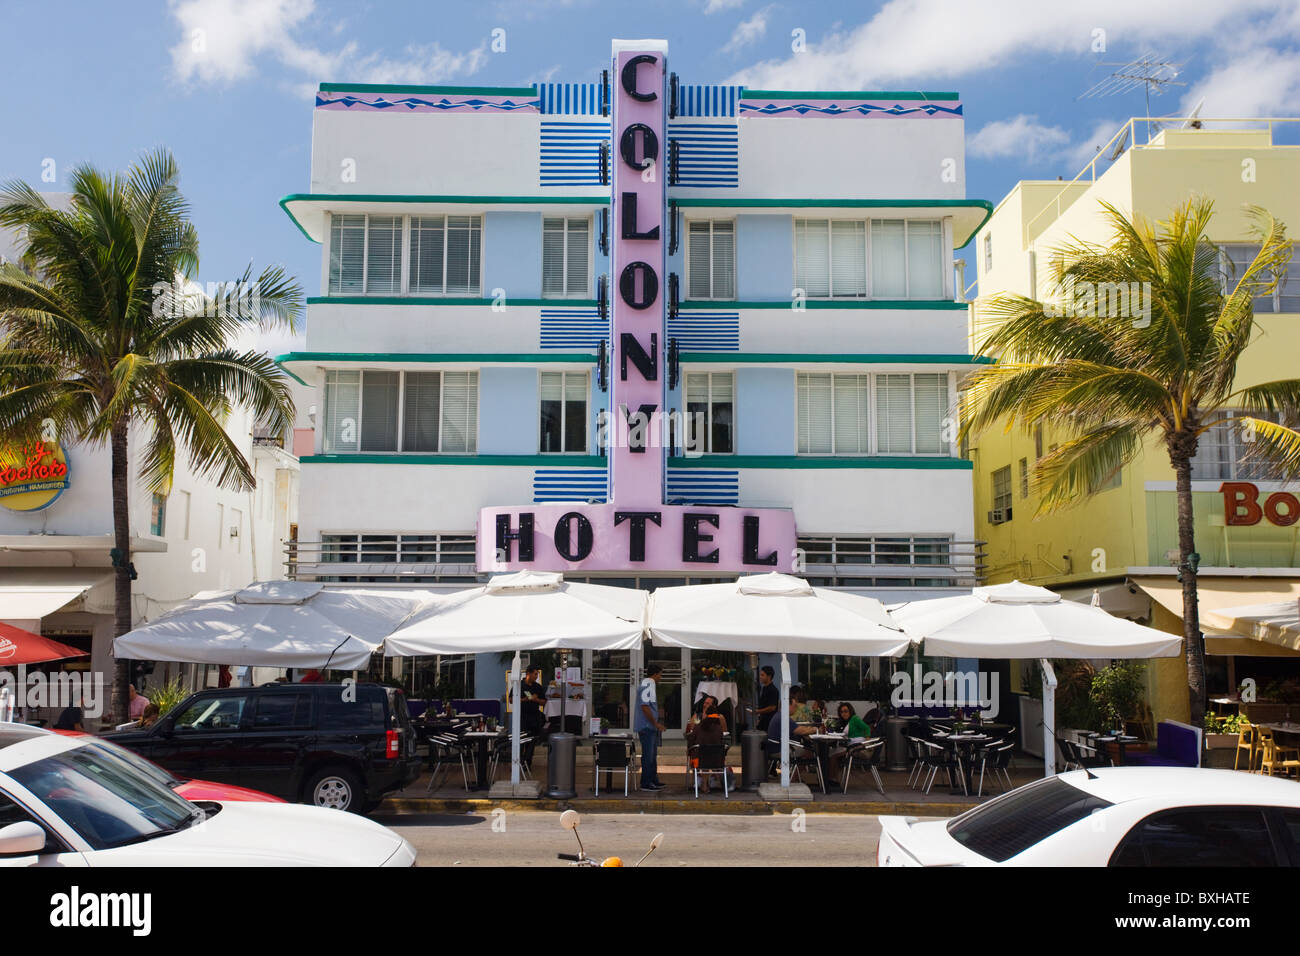 Colony Hotel art deco architecture on Ocean Drive, South Beach, Miami, Florida, United States of America - Stock Image